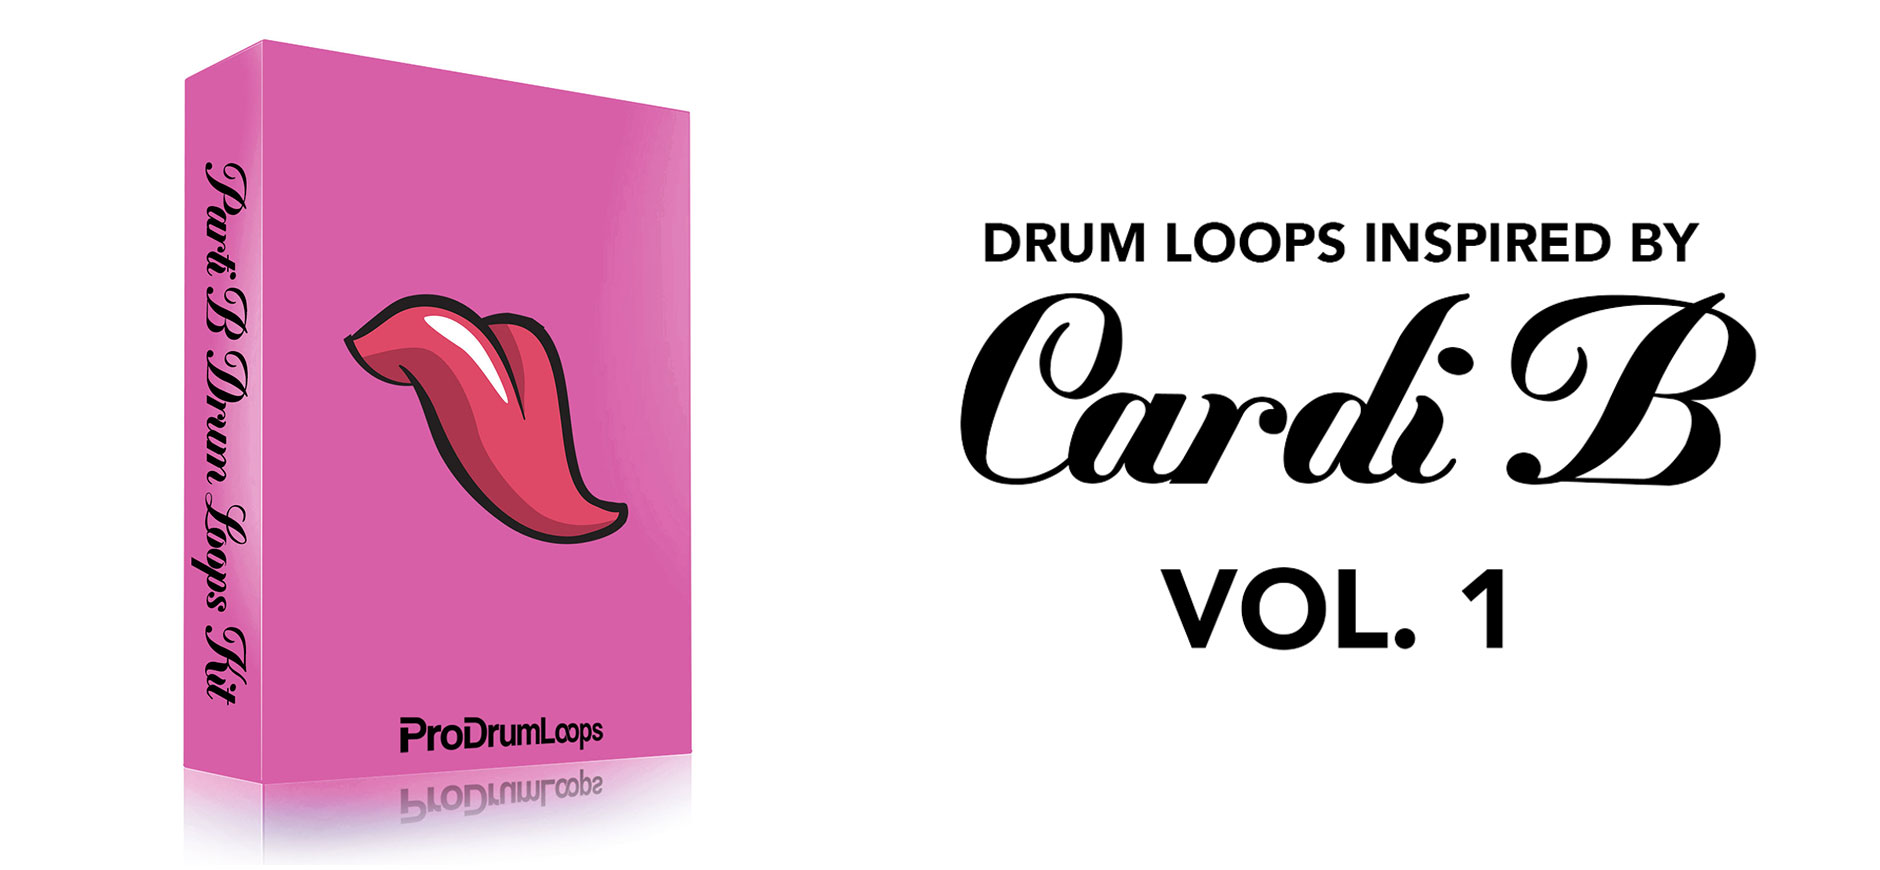 Cardi B Drum Loops Kit